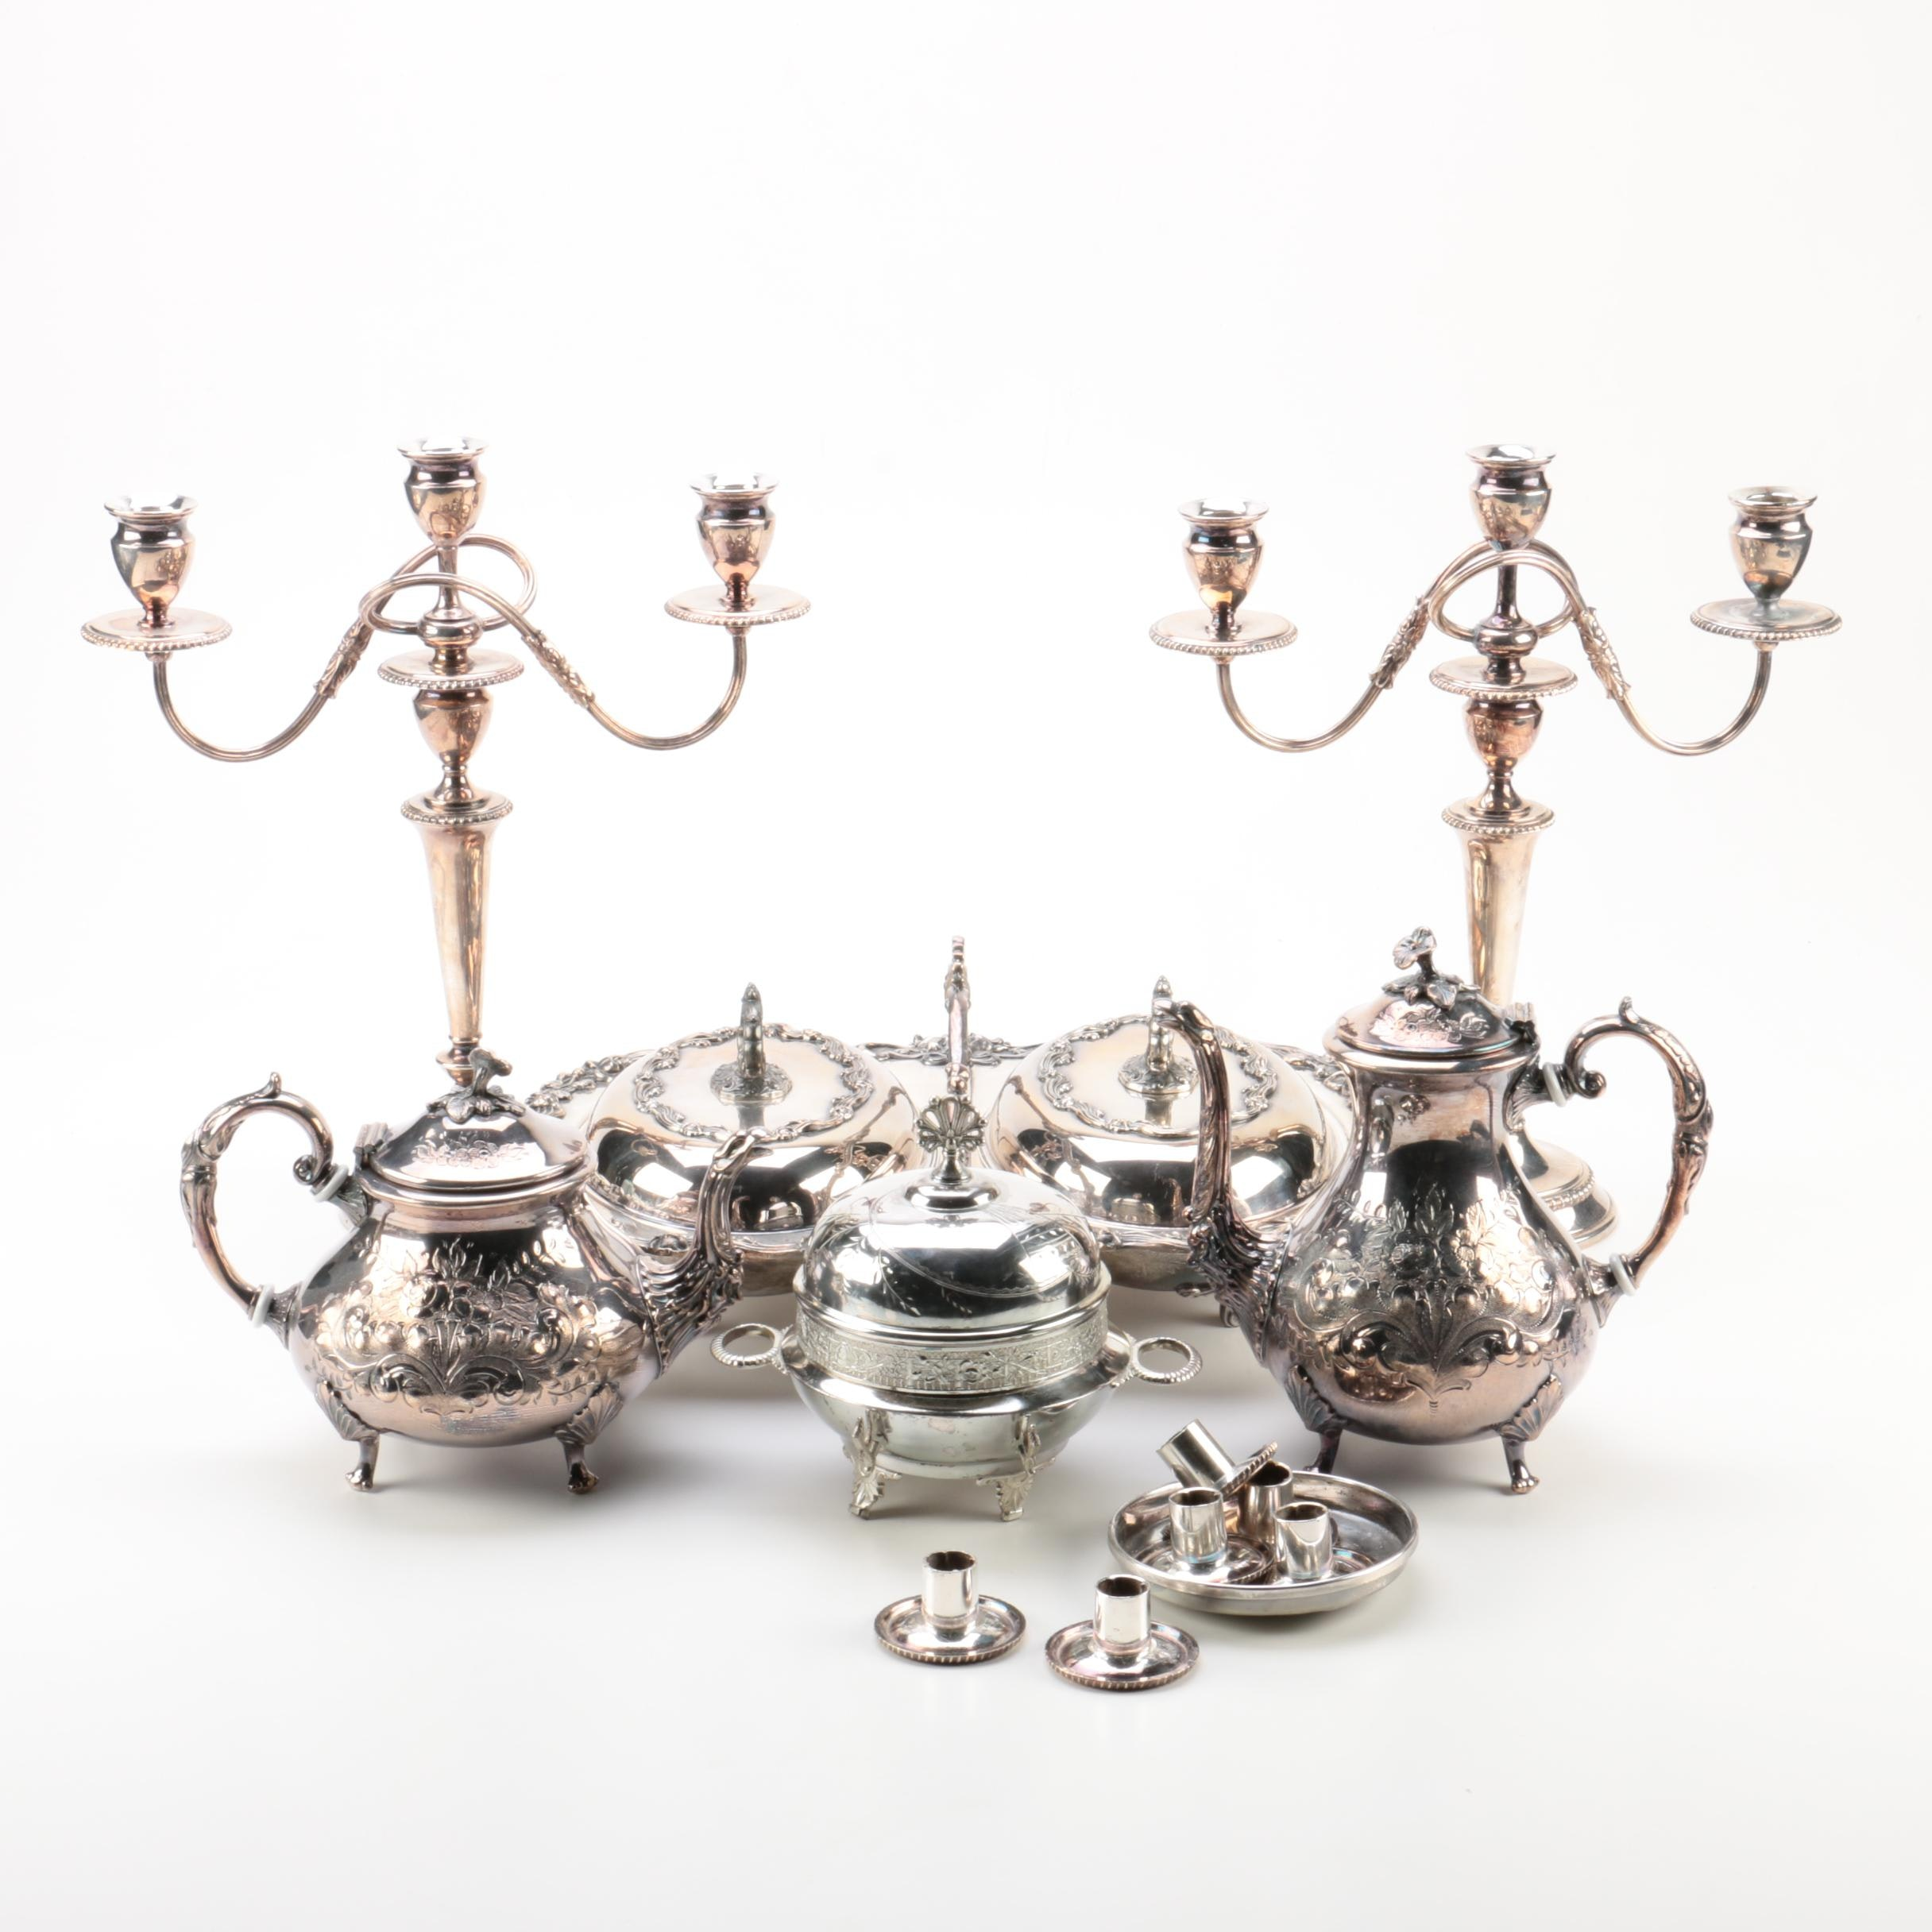 Silver Plate Serviceware and Table Accessories